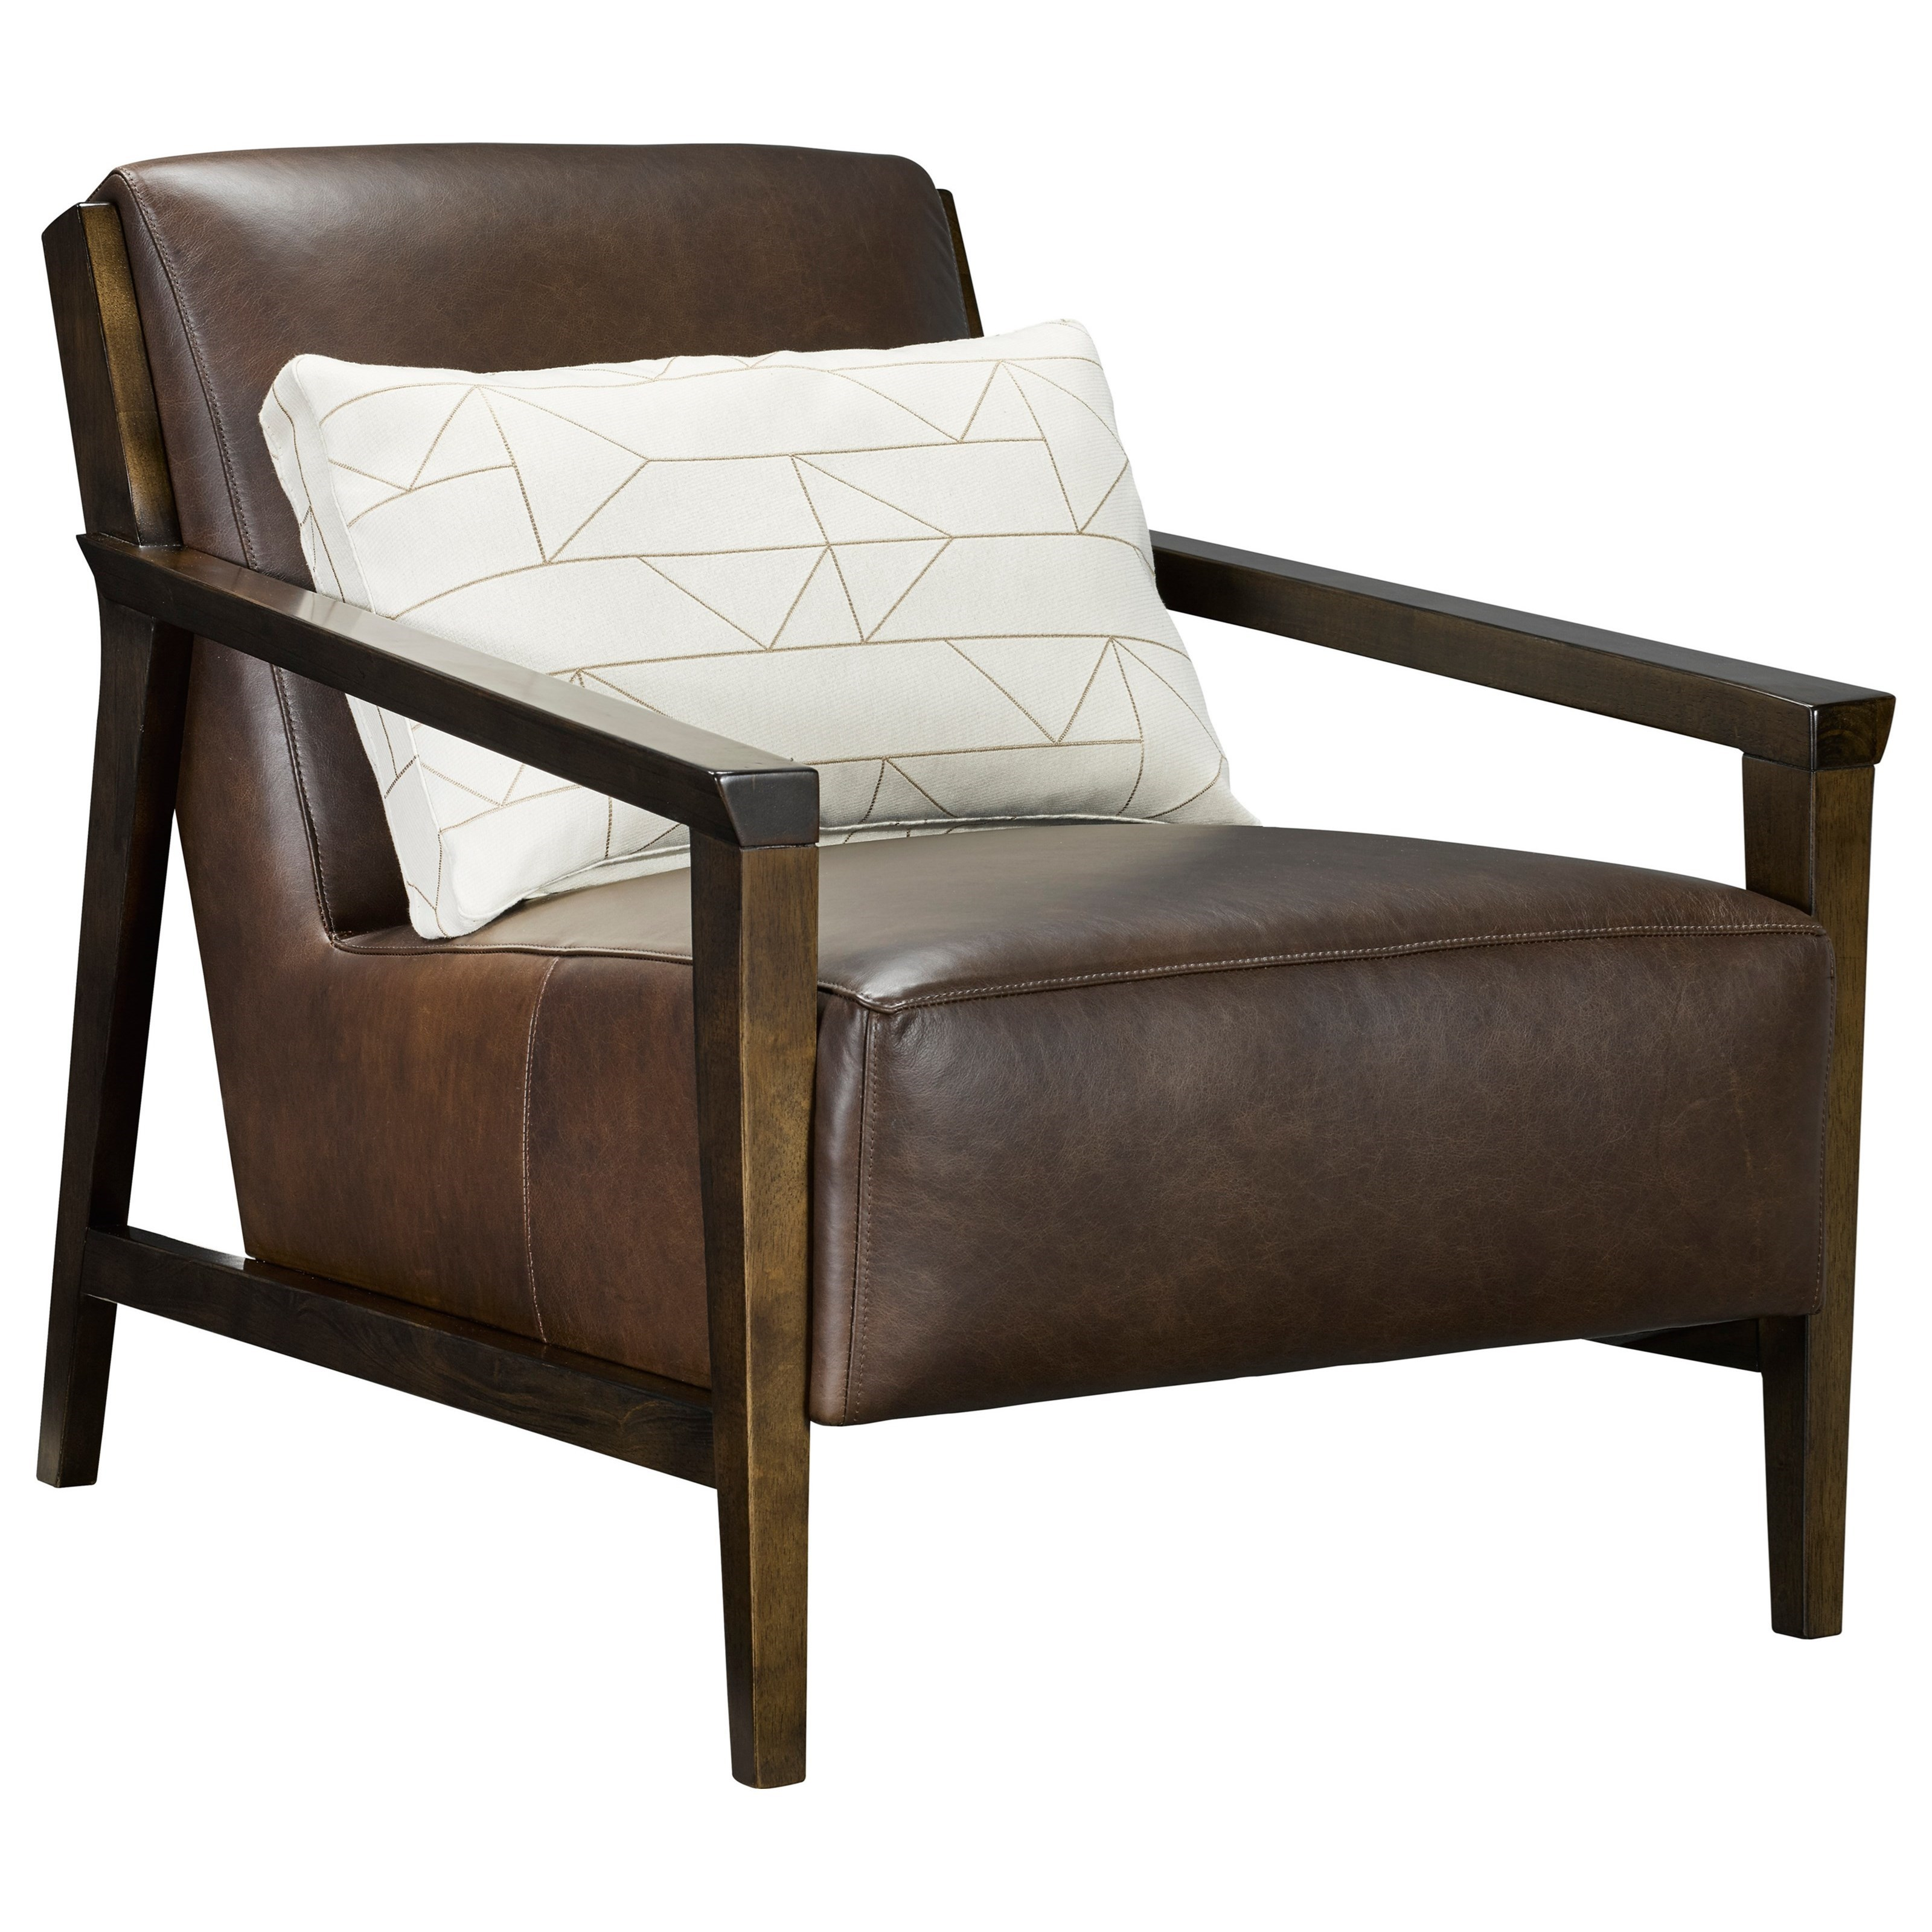 Merveilleux Broyhill Furniture Personalities Accent ChairsPacey Chair